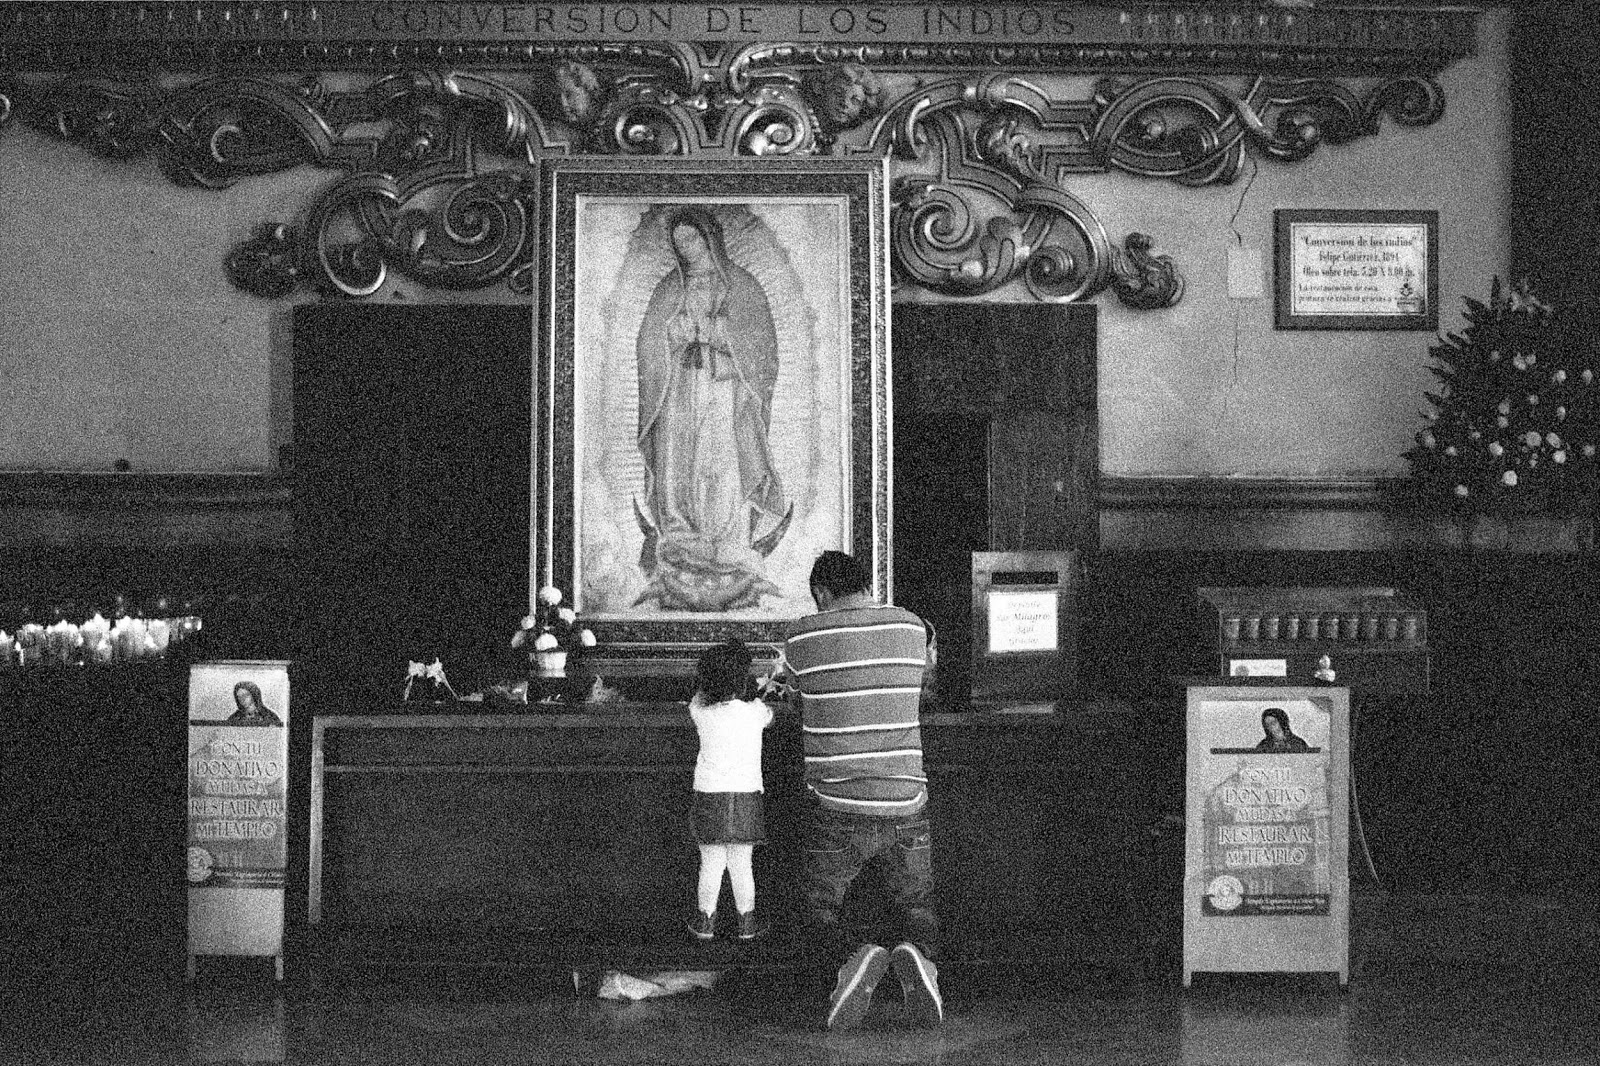 <p><em>Father and daughter praying to the Virgin of Guadalupe</em>, 2014. Image source: Wikimedia Commons.</p>